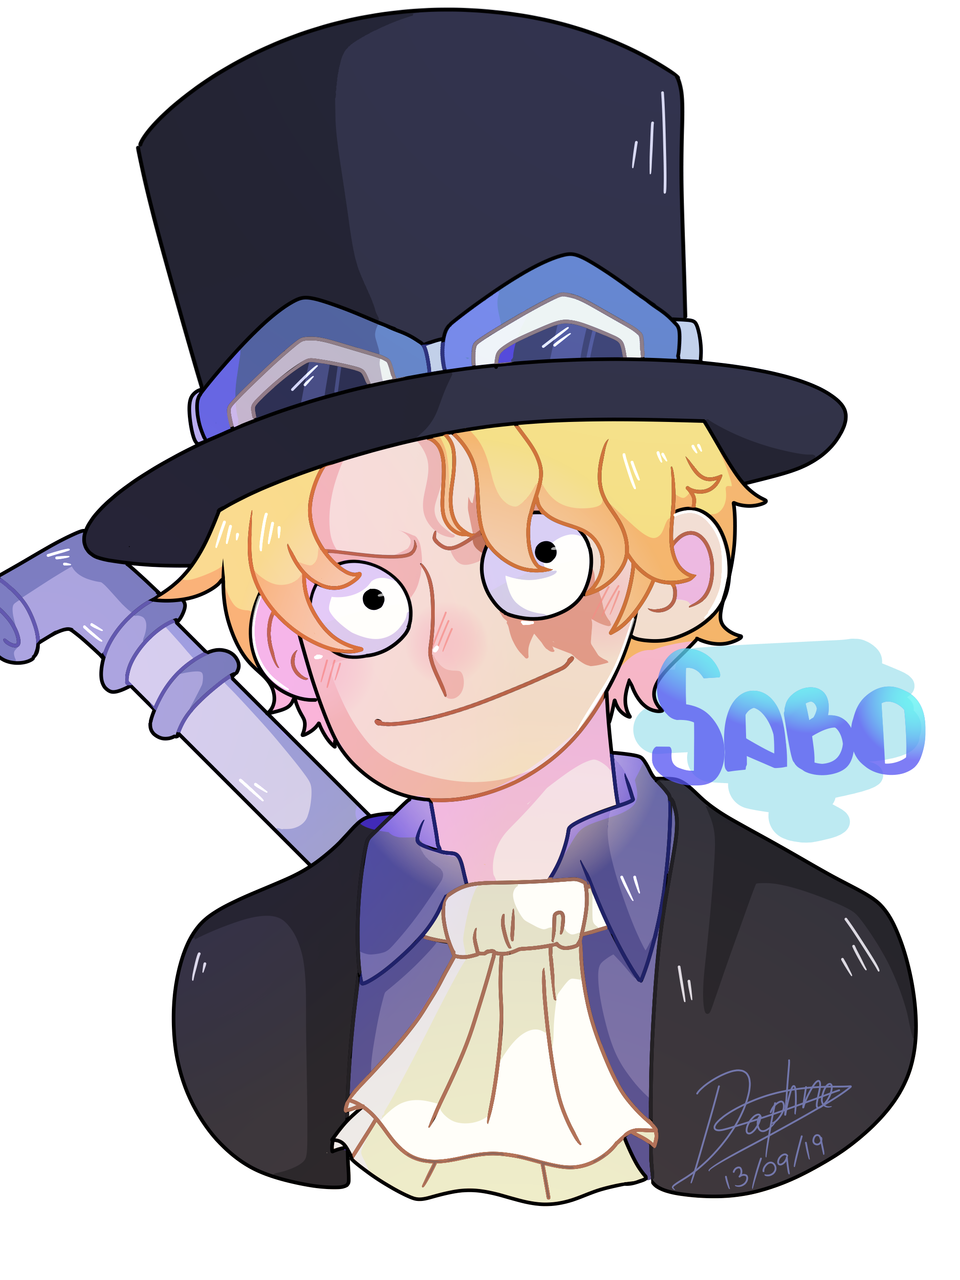 Sabo _One Piece 💕💕